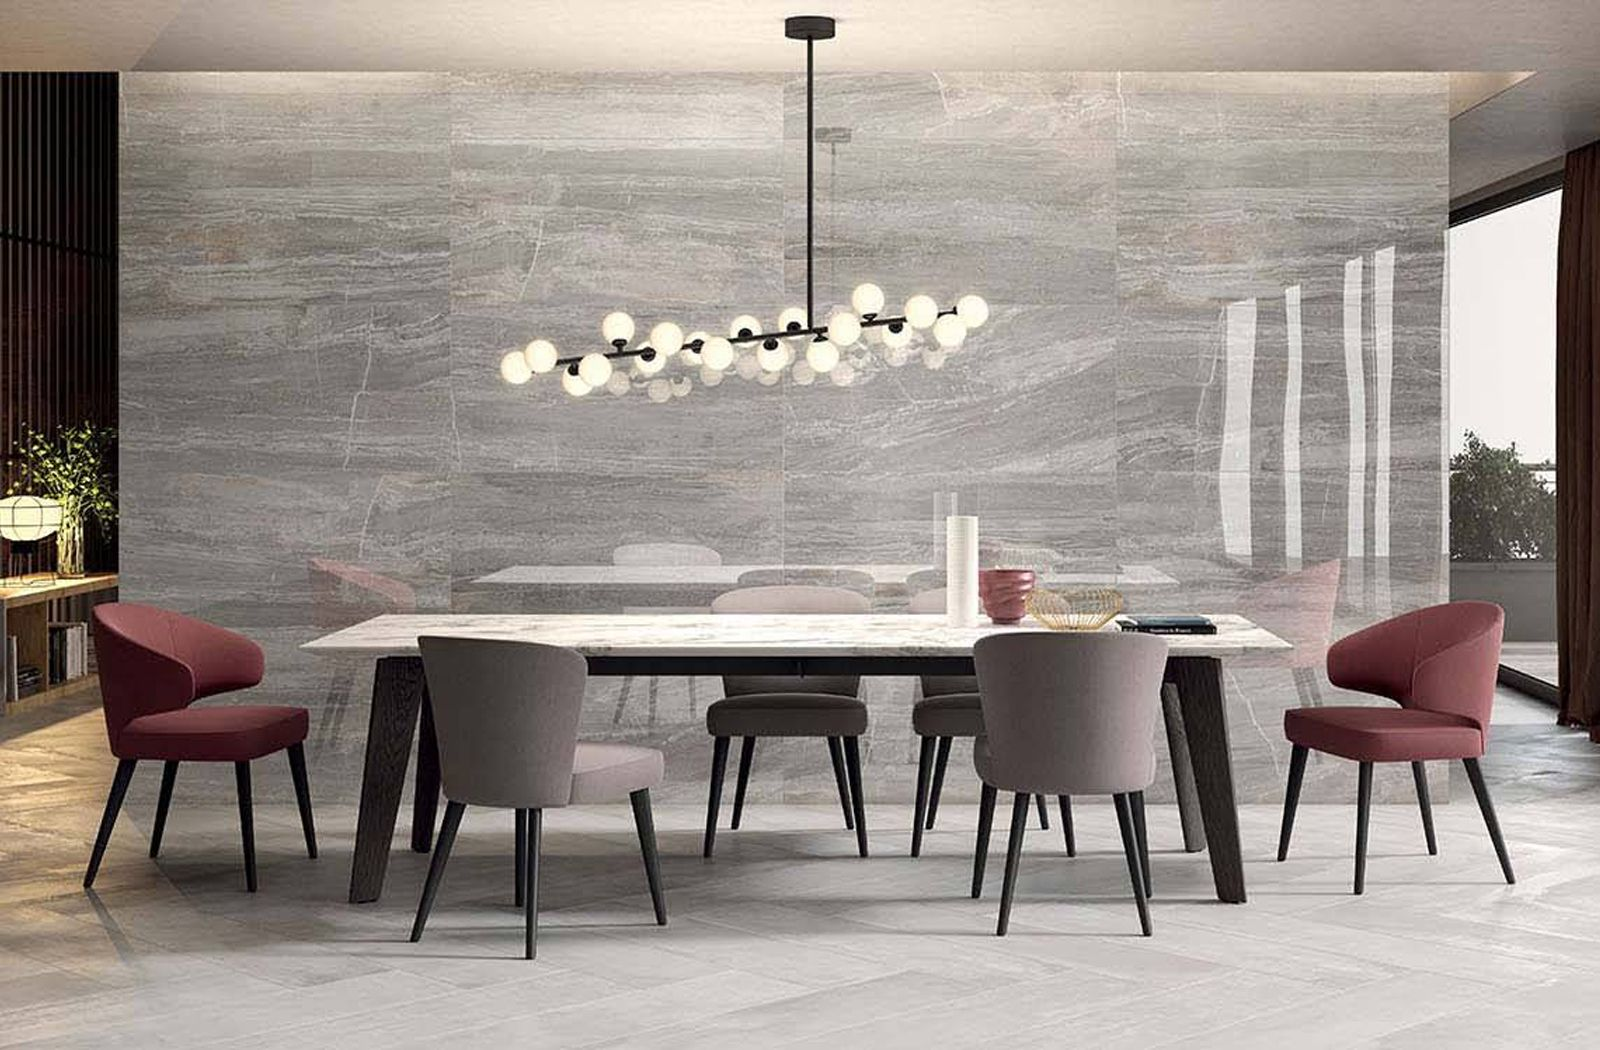 Elegant Dining Area With Feature Wall From The Sensi Tile Collection By Abk Beautiful Dining Rooms Dining Room Design Dining Room Remodel